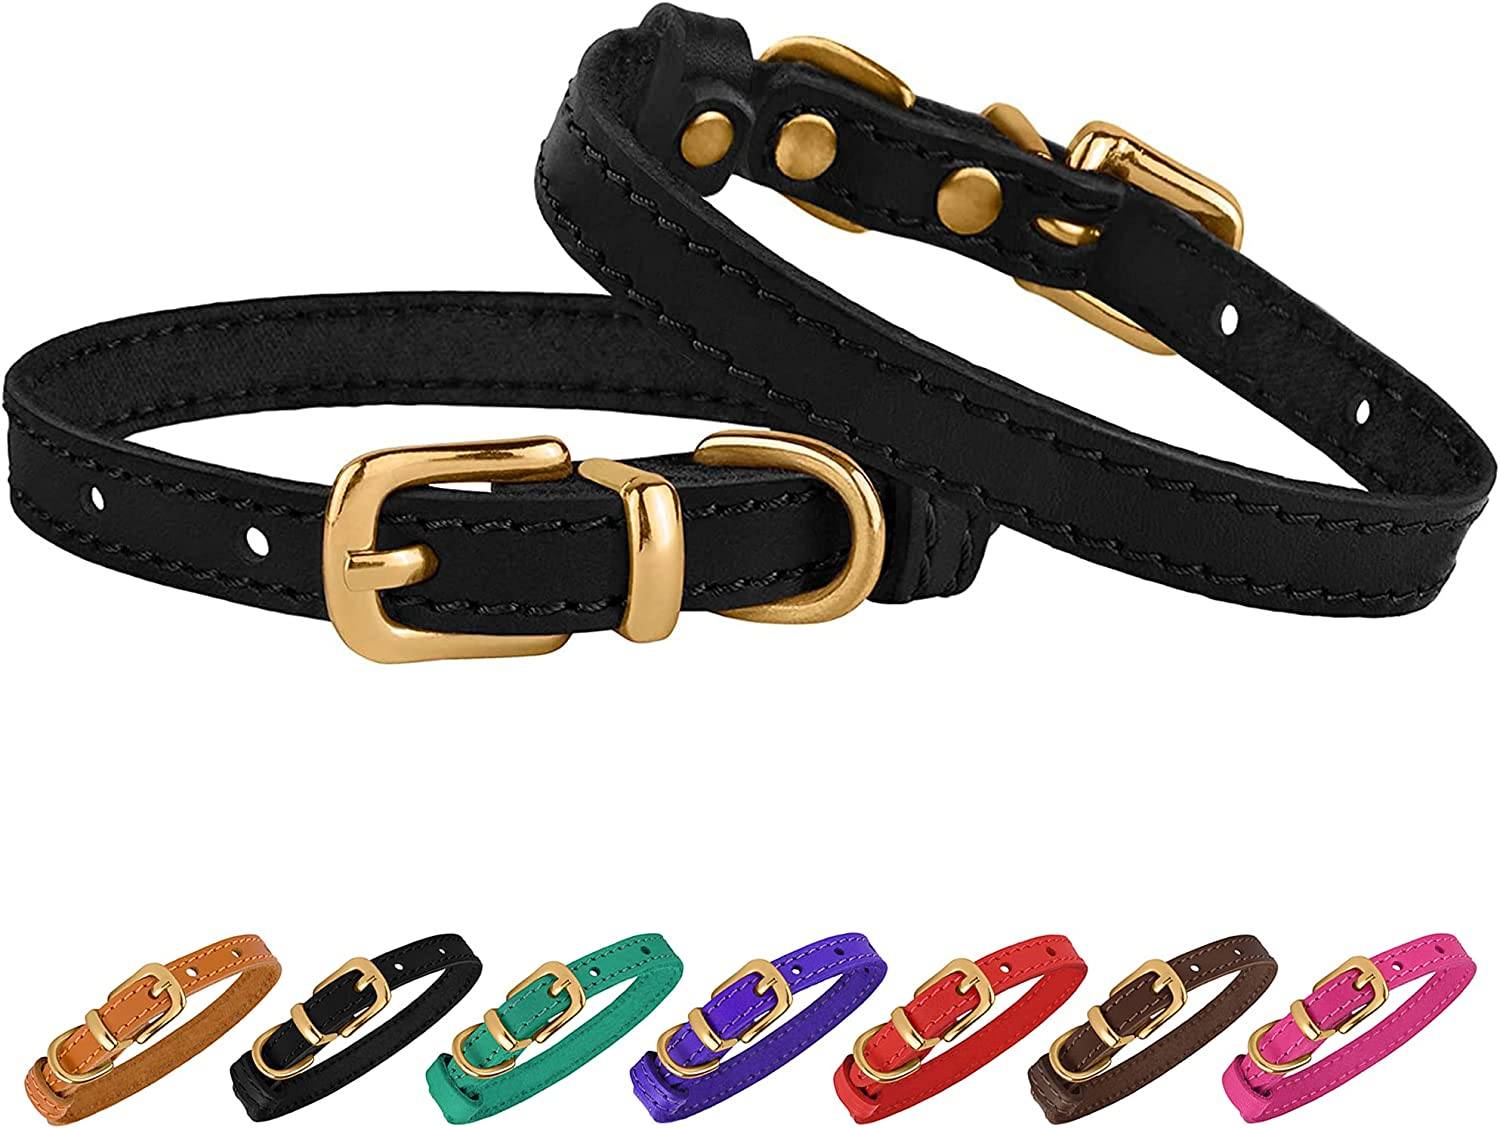 BRONZEDOG Leather Cat Collar Virginia Beach Mall with Adjustable Co New Free Shipping Buckle Pet Small